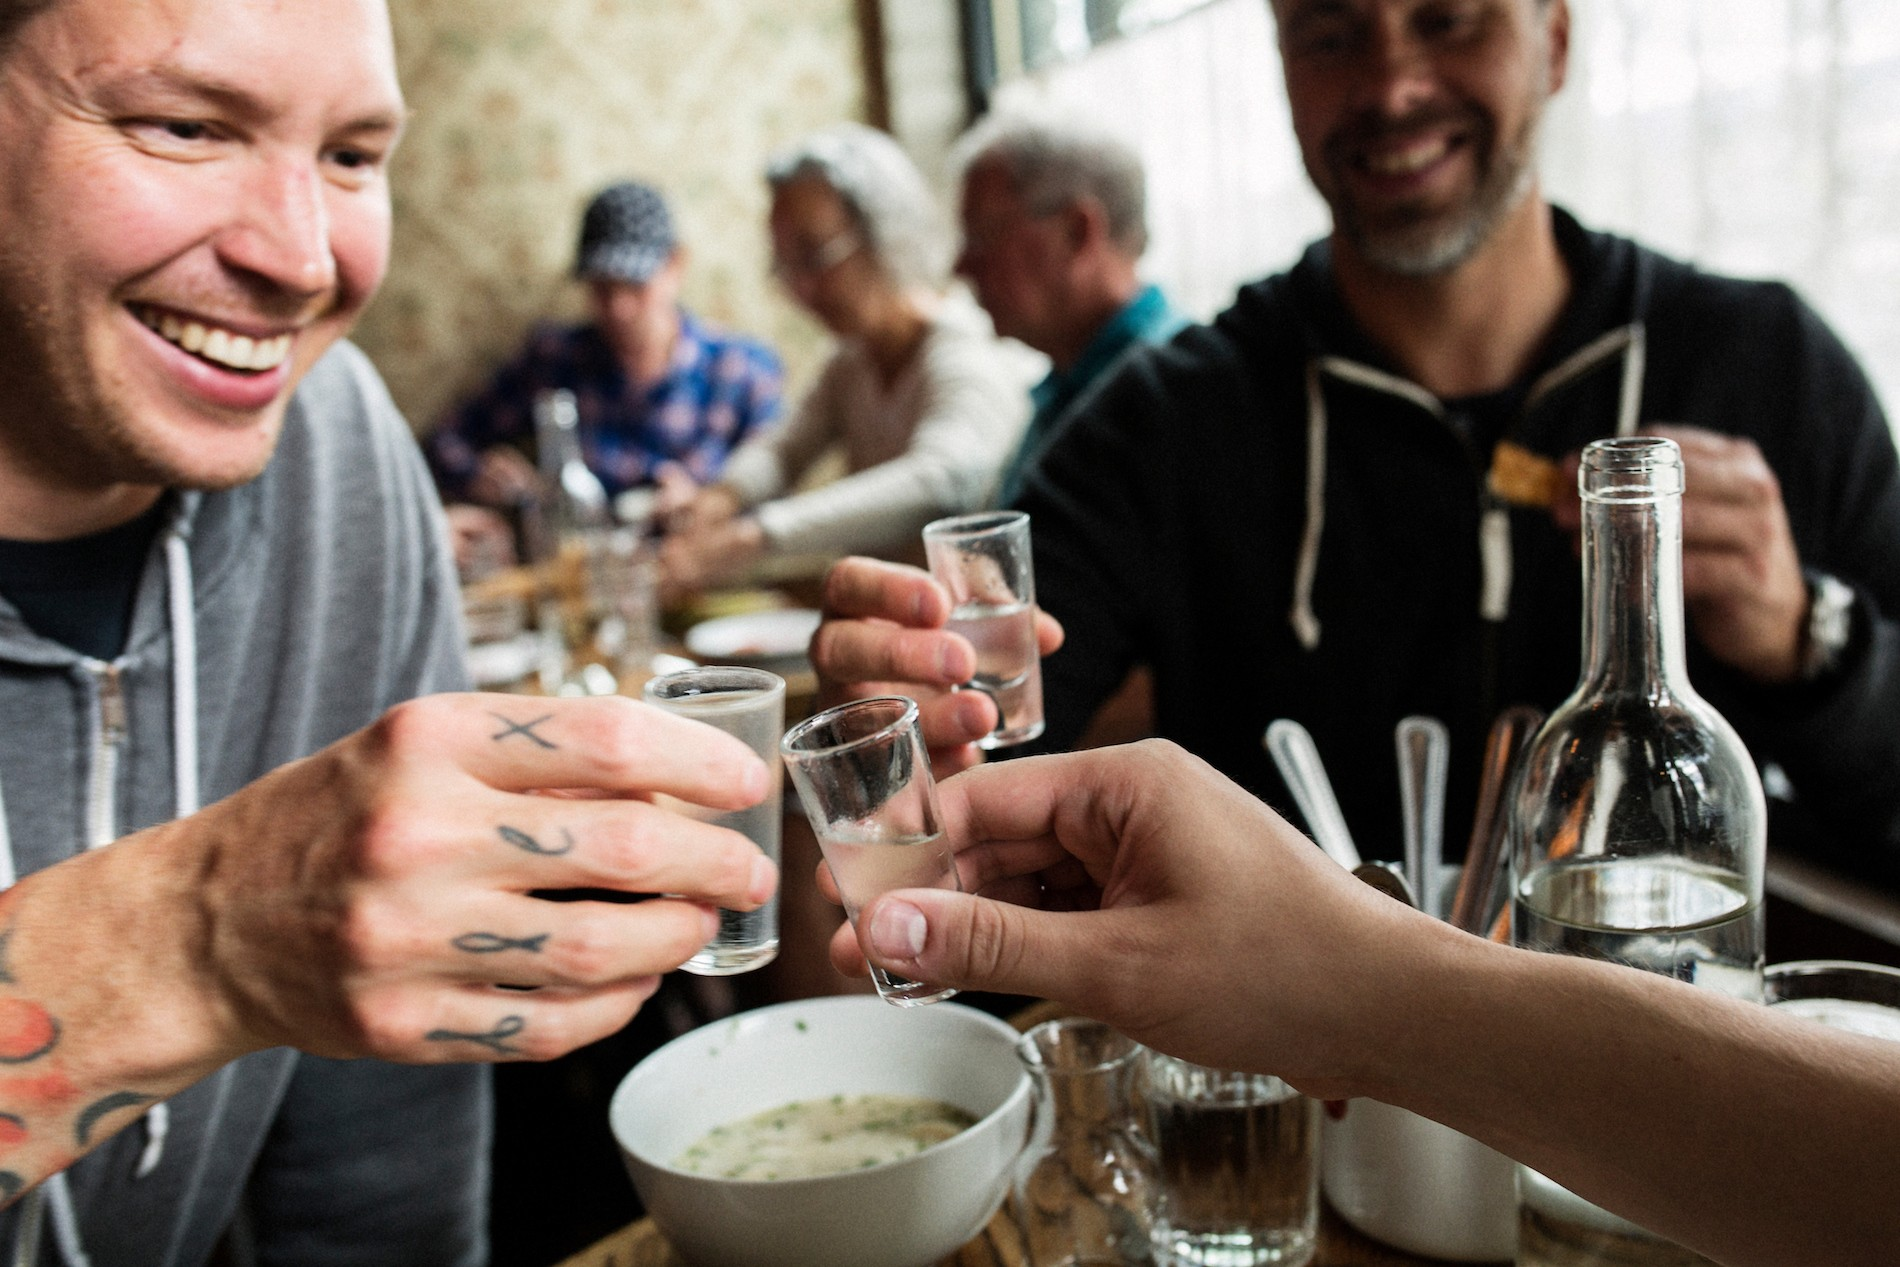 Toasting with house infused vodka at Kachka. Mushrooms in Portland, Oregon. August 2016. Matt Lutton / Boreal Collective for Vice Munchies